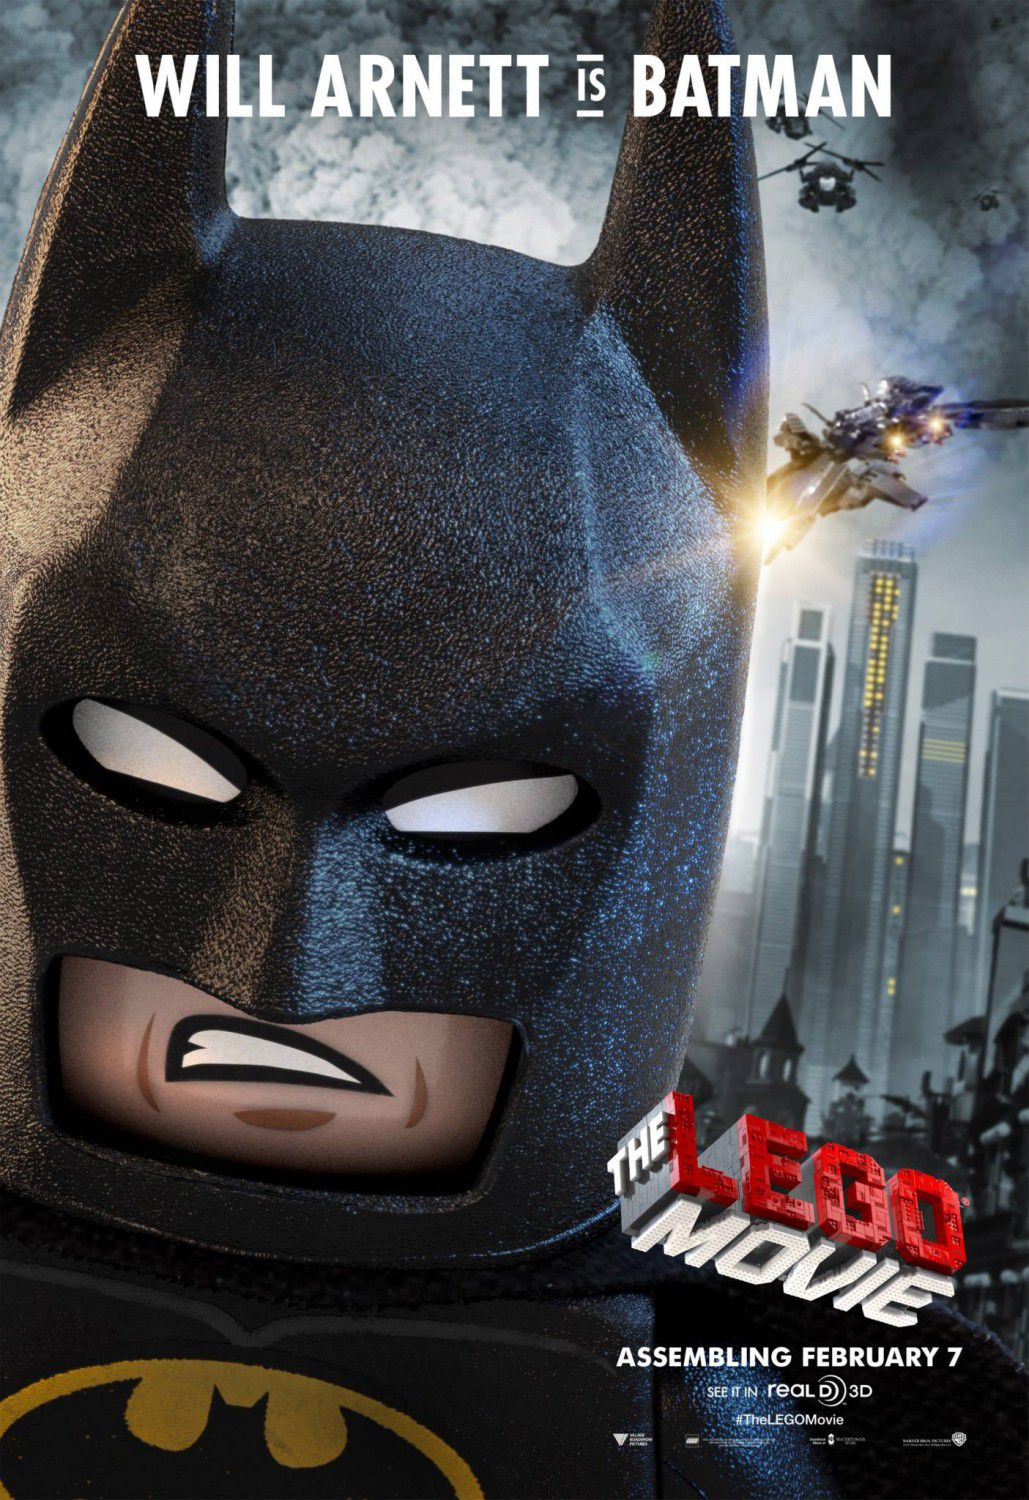 LEGO movie - Batman